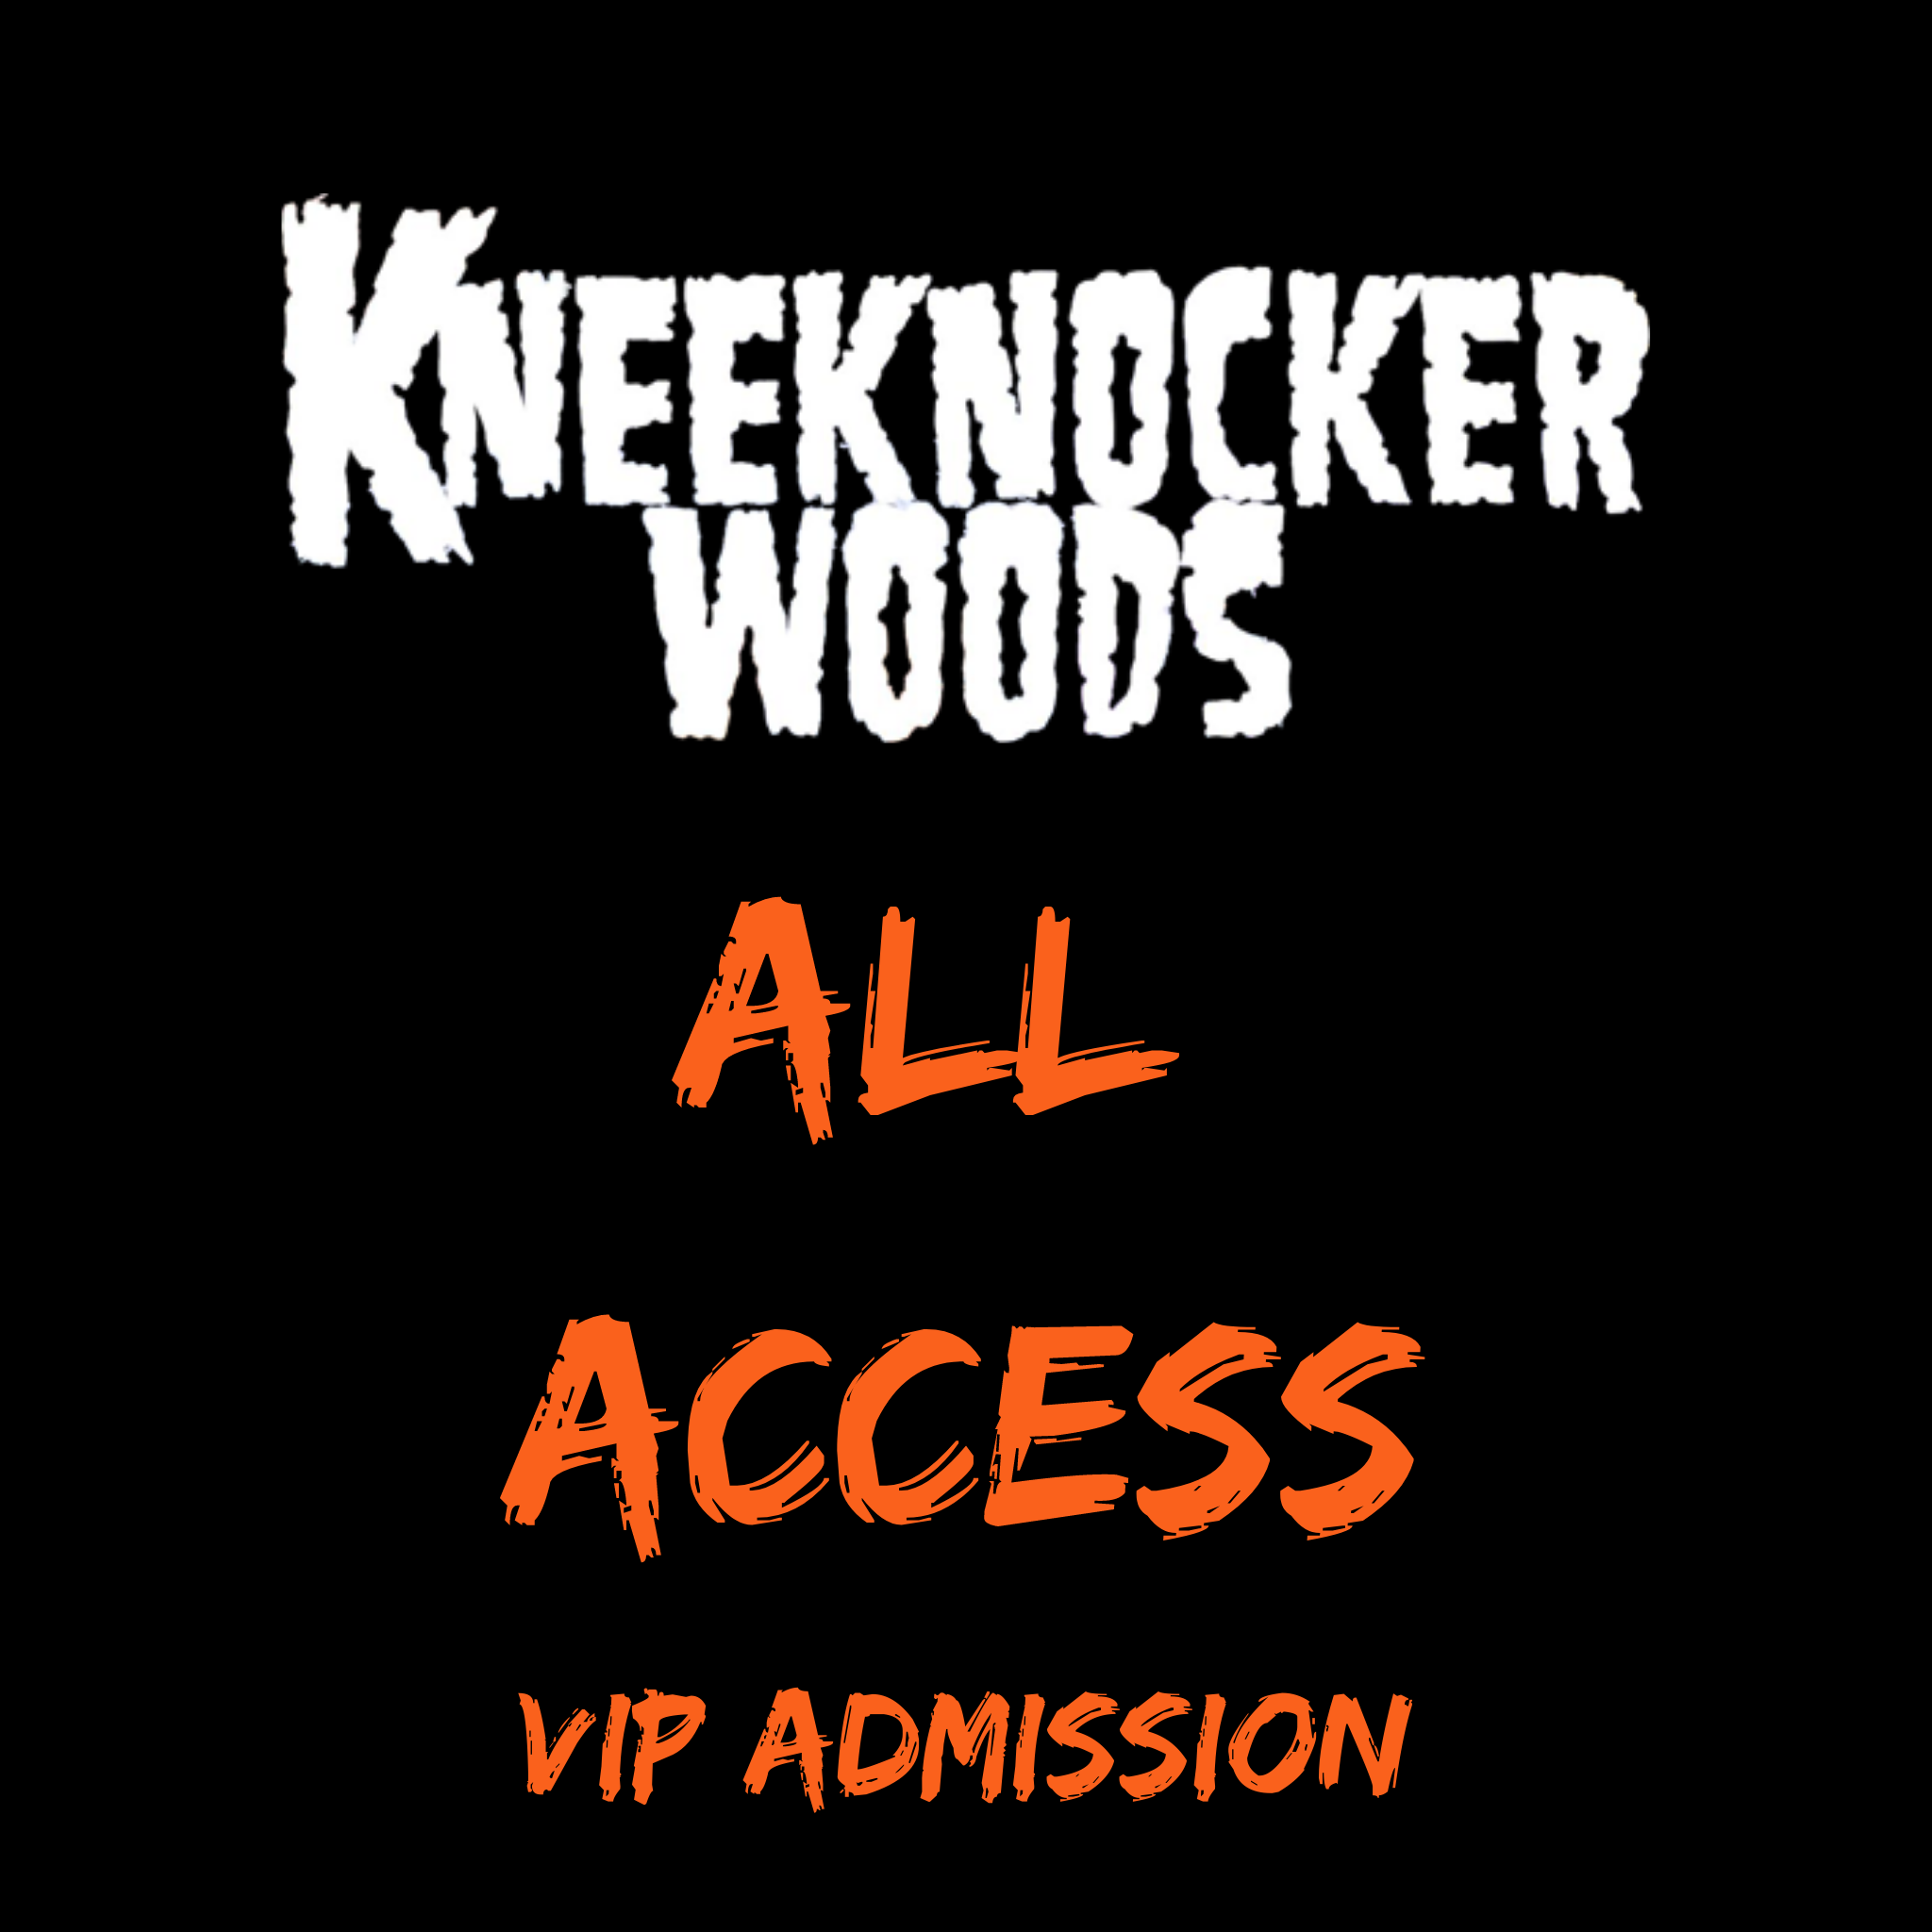 KneeKnocker Woods VIP Admission All Access Pass